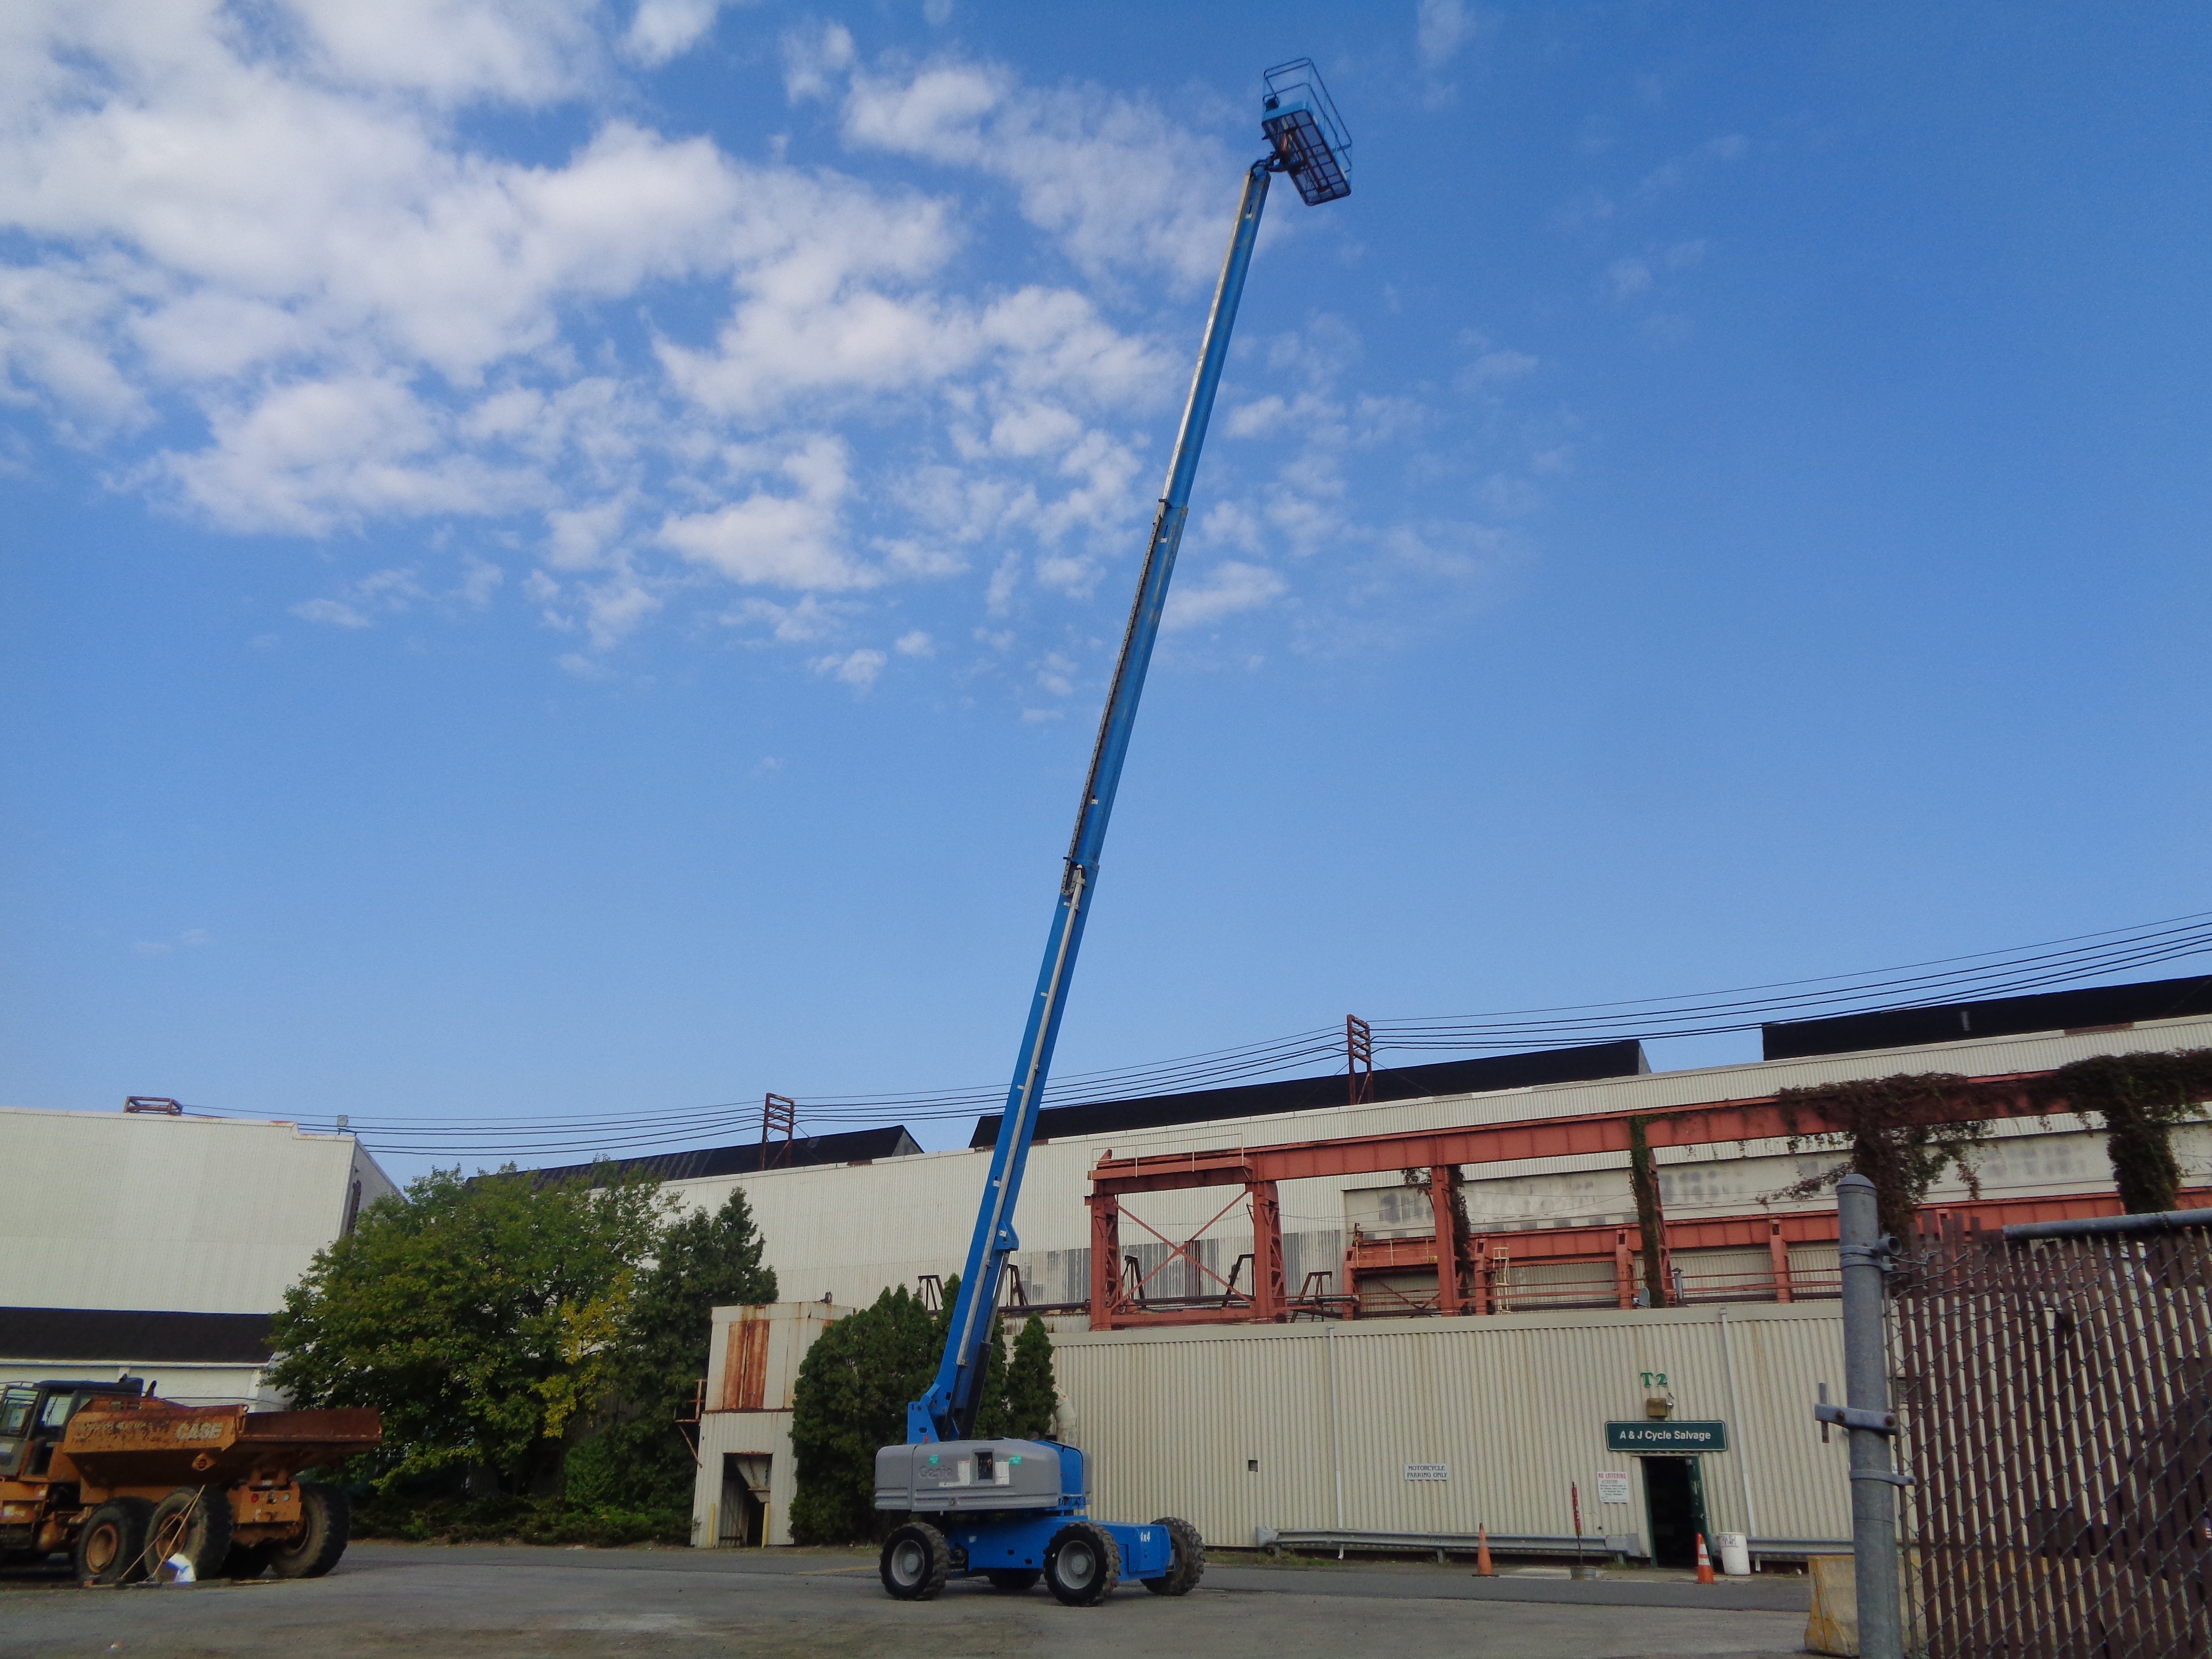 Genie S80 80ft Boom Lift - Image 21 of 22